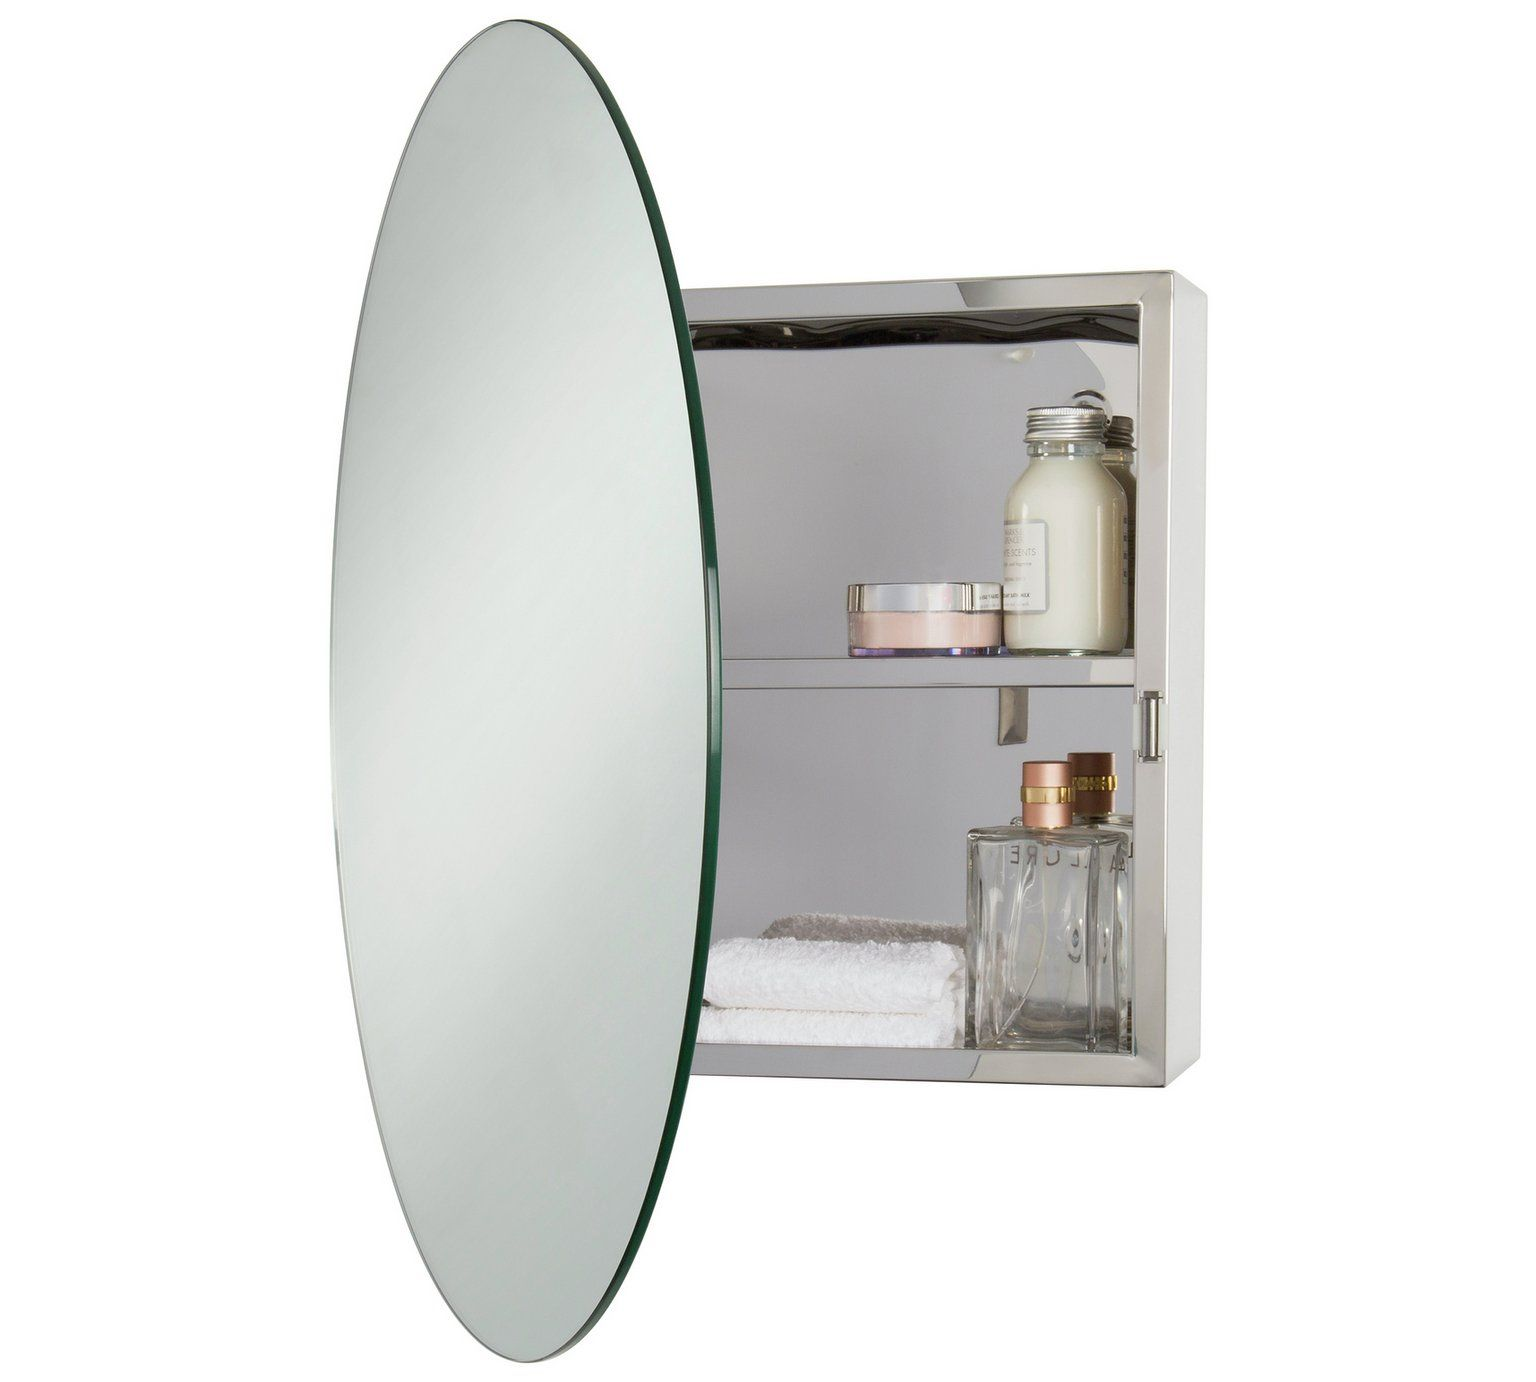 Buy Croydex Severn Round Stainless Steel Mirrored Door Cabinet Bathroom Cabinets Bathroom Mirror With Shelf Small Bathroom Furniture Stainless Steel Cabinets